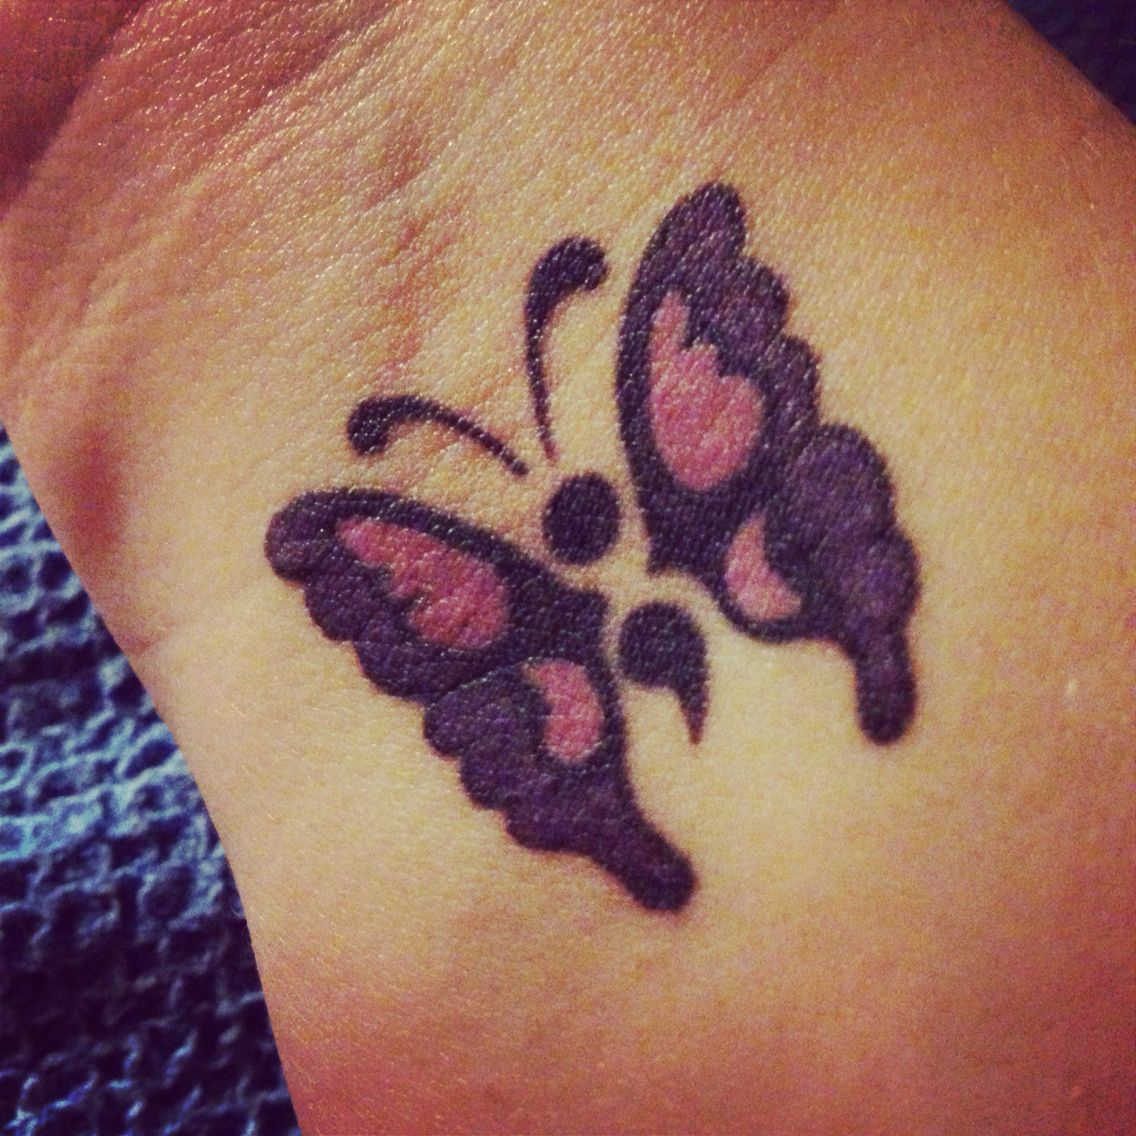 Anxiety Awareness Tattoo Google Search: Semi-colon Tattoo With Butterfly Wings. I Have Depression